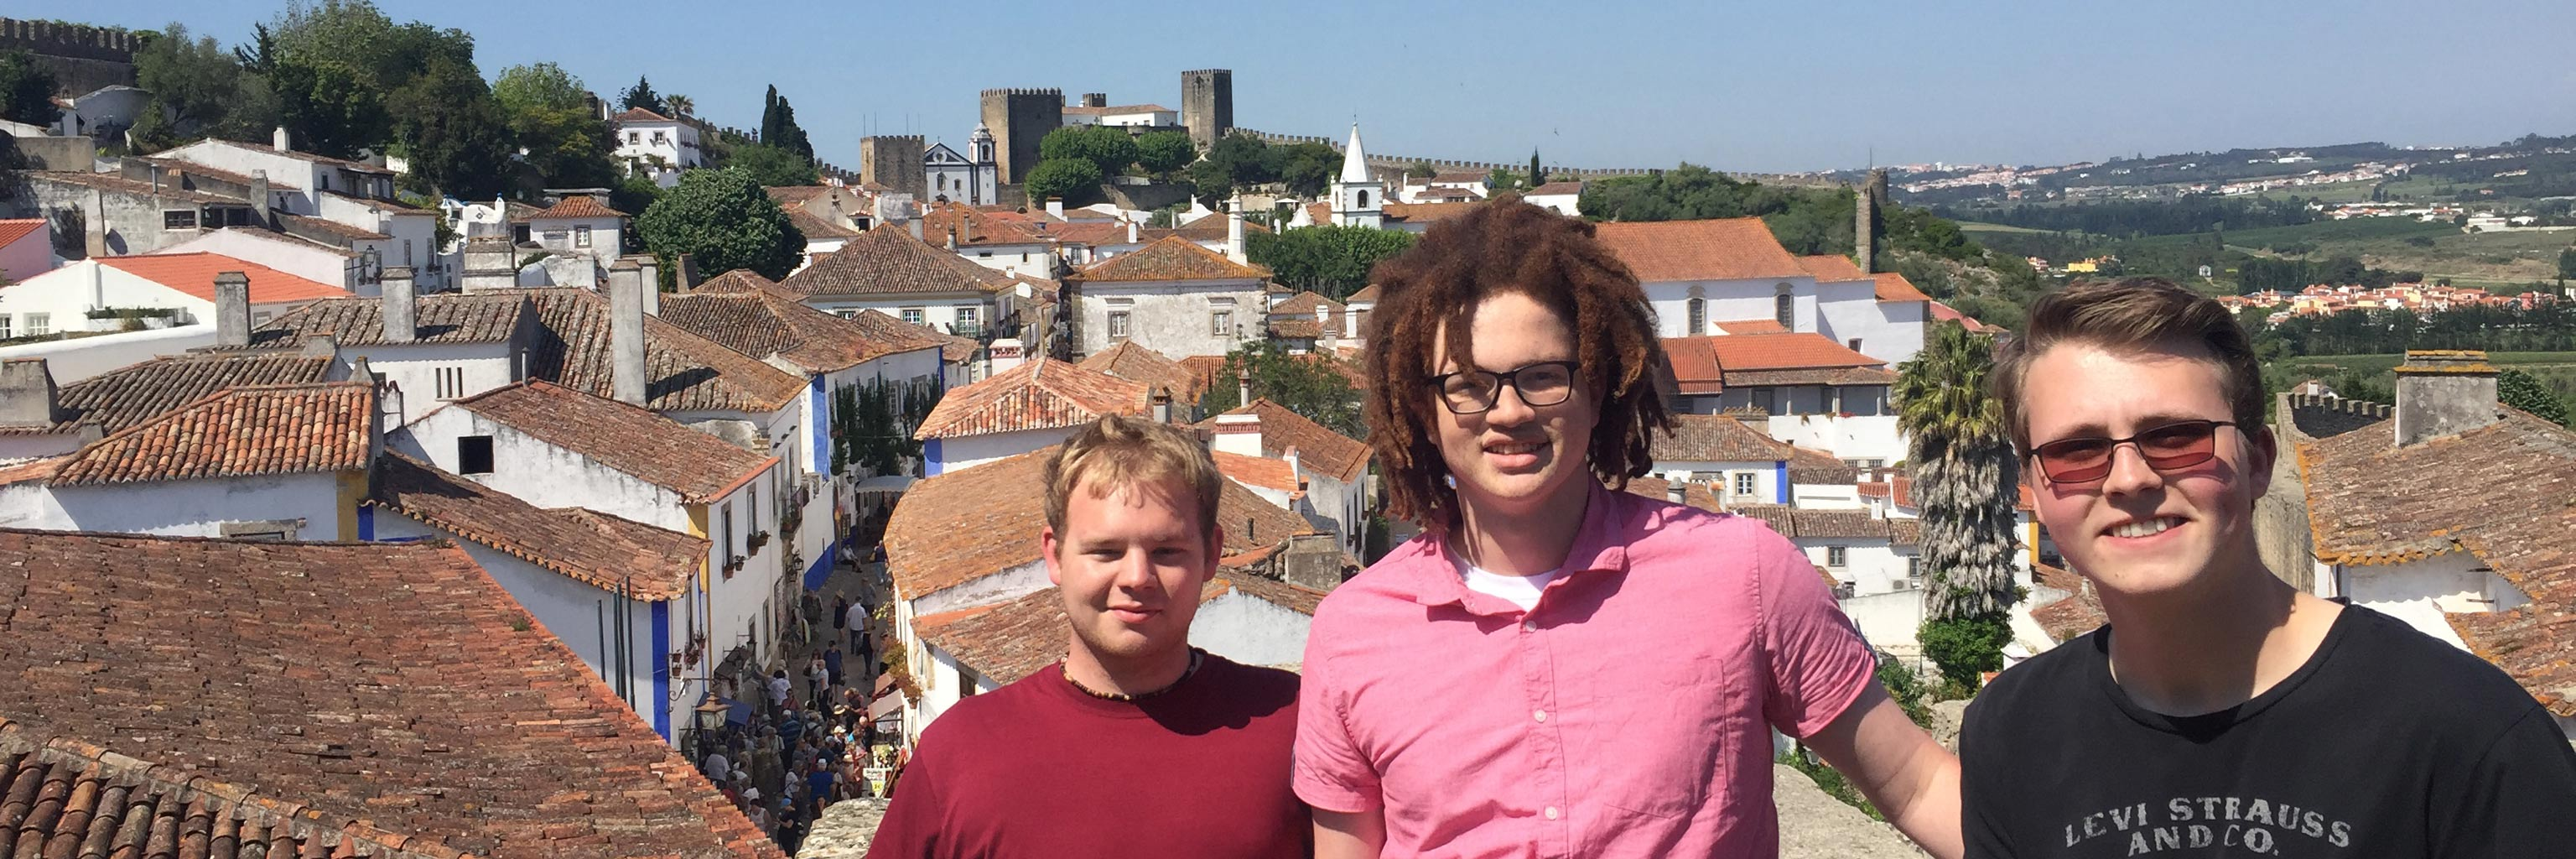 Three students posing in front of rooftops in their study abroad destination